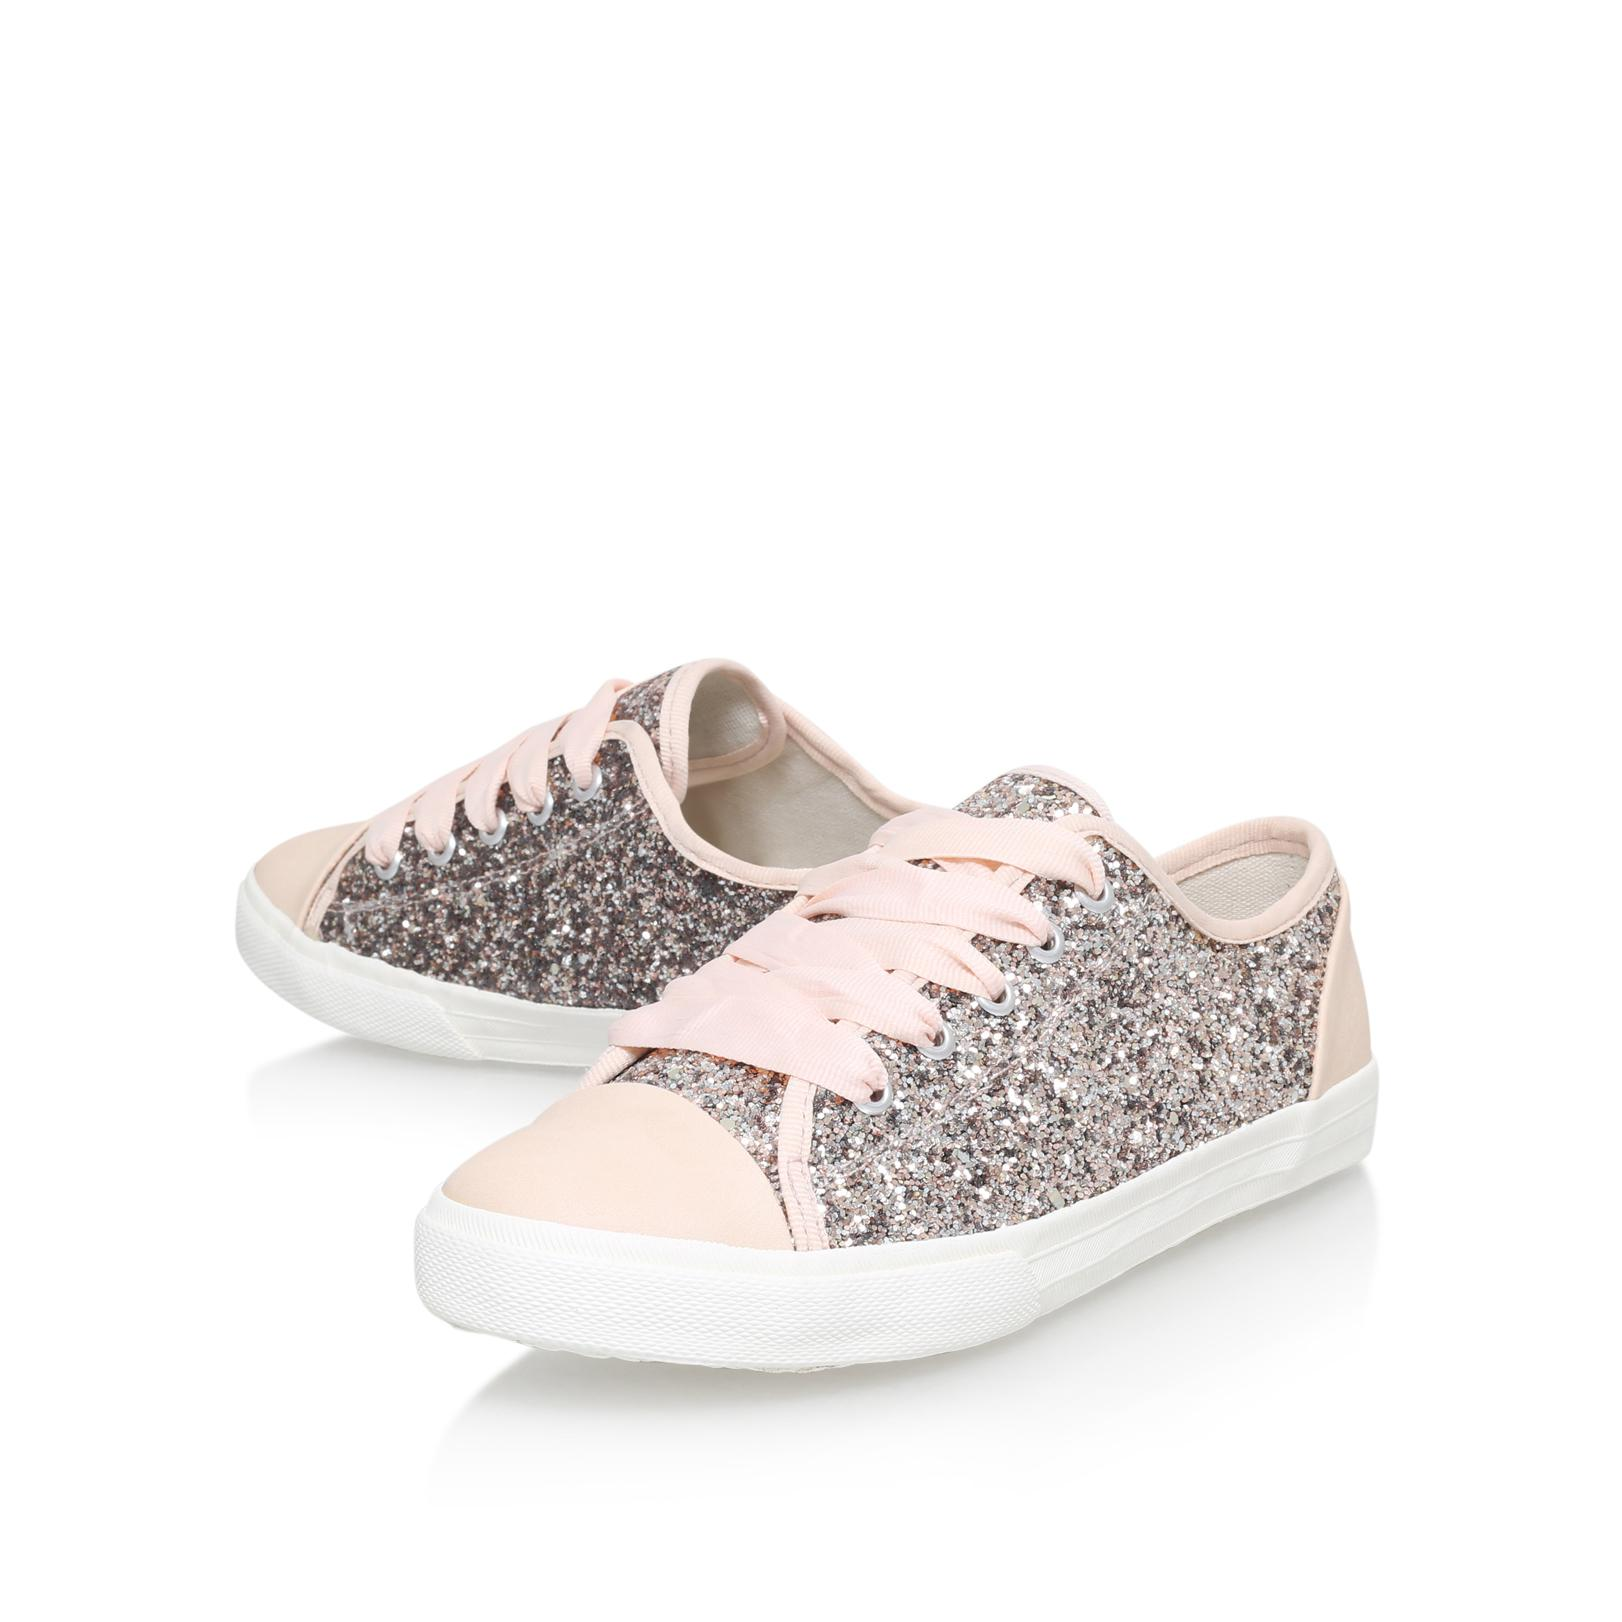 KG by Kurt Geiger Womens Lucca G Glitter/Leo Casual Lace